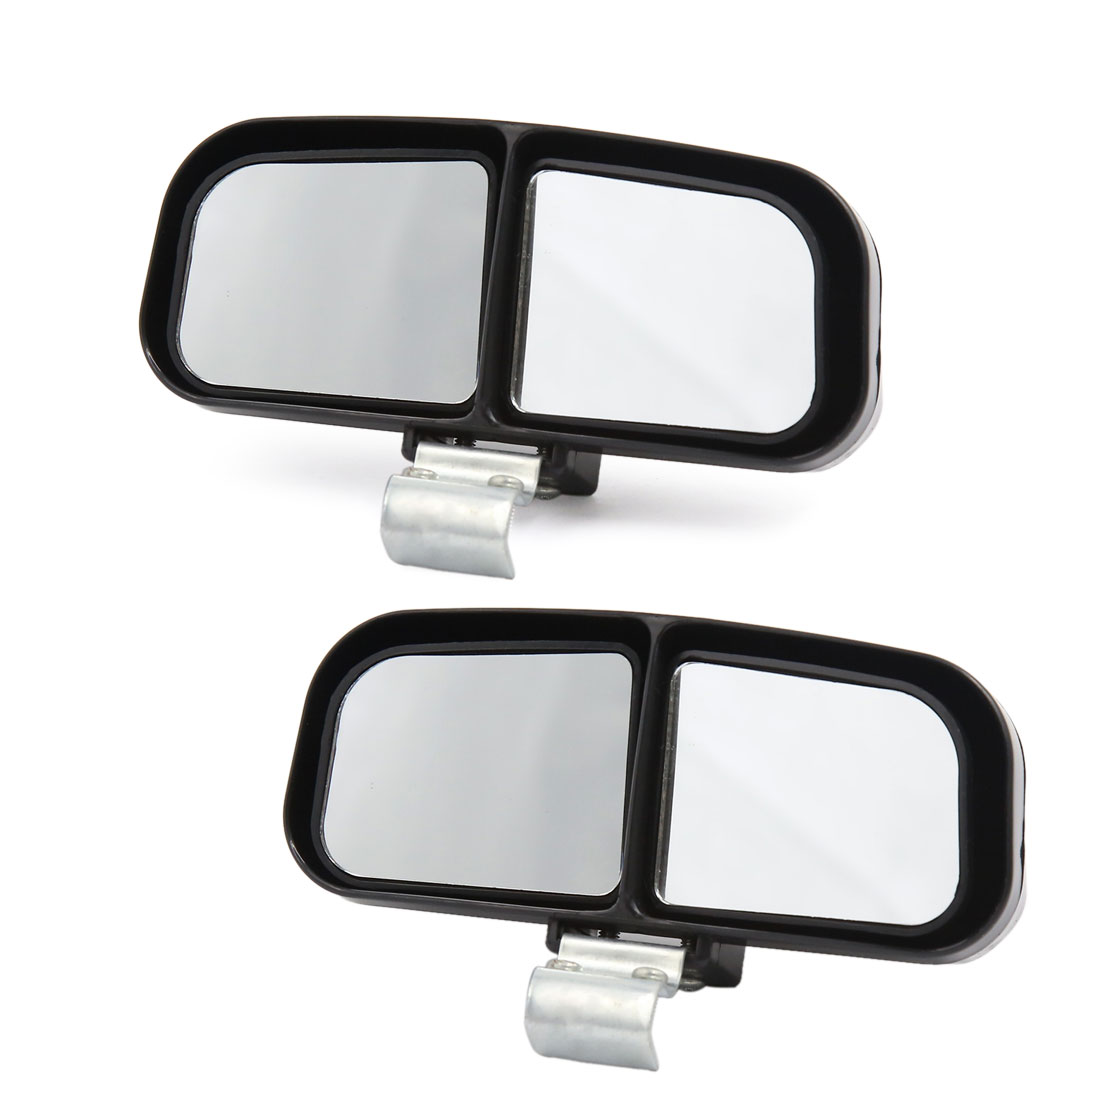 2pcs Adjustable Car Auxiliary Wide Angle Rearview Blind Spot Parking Mirror Black